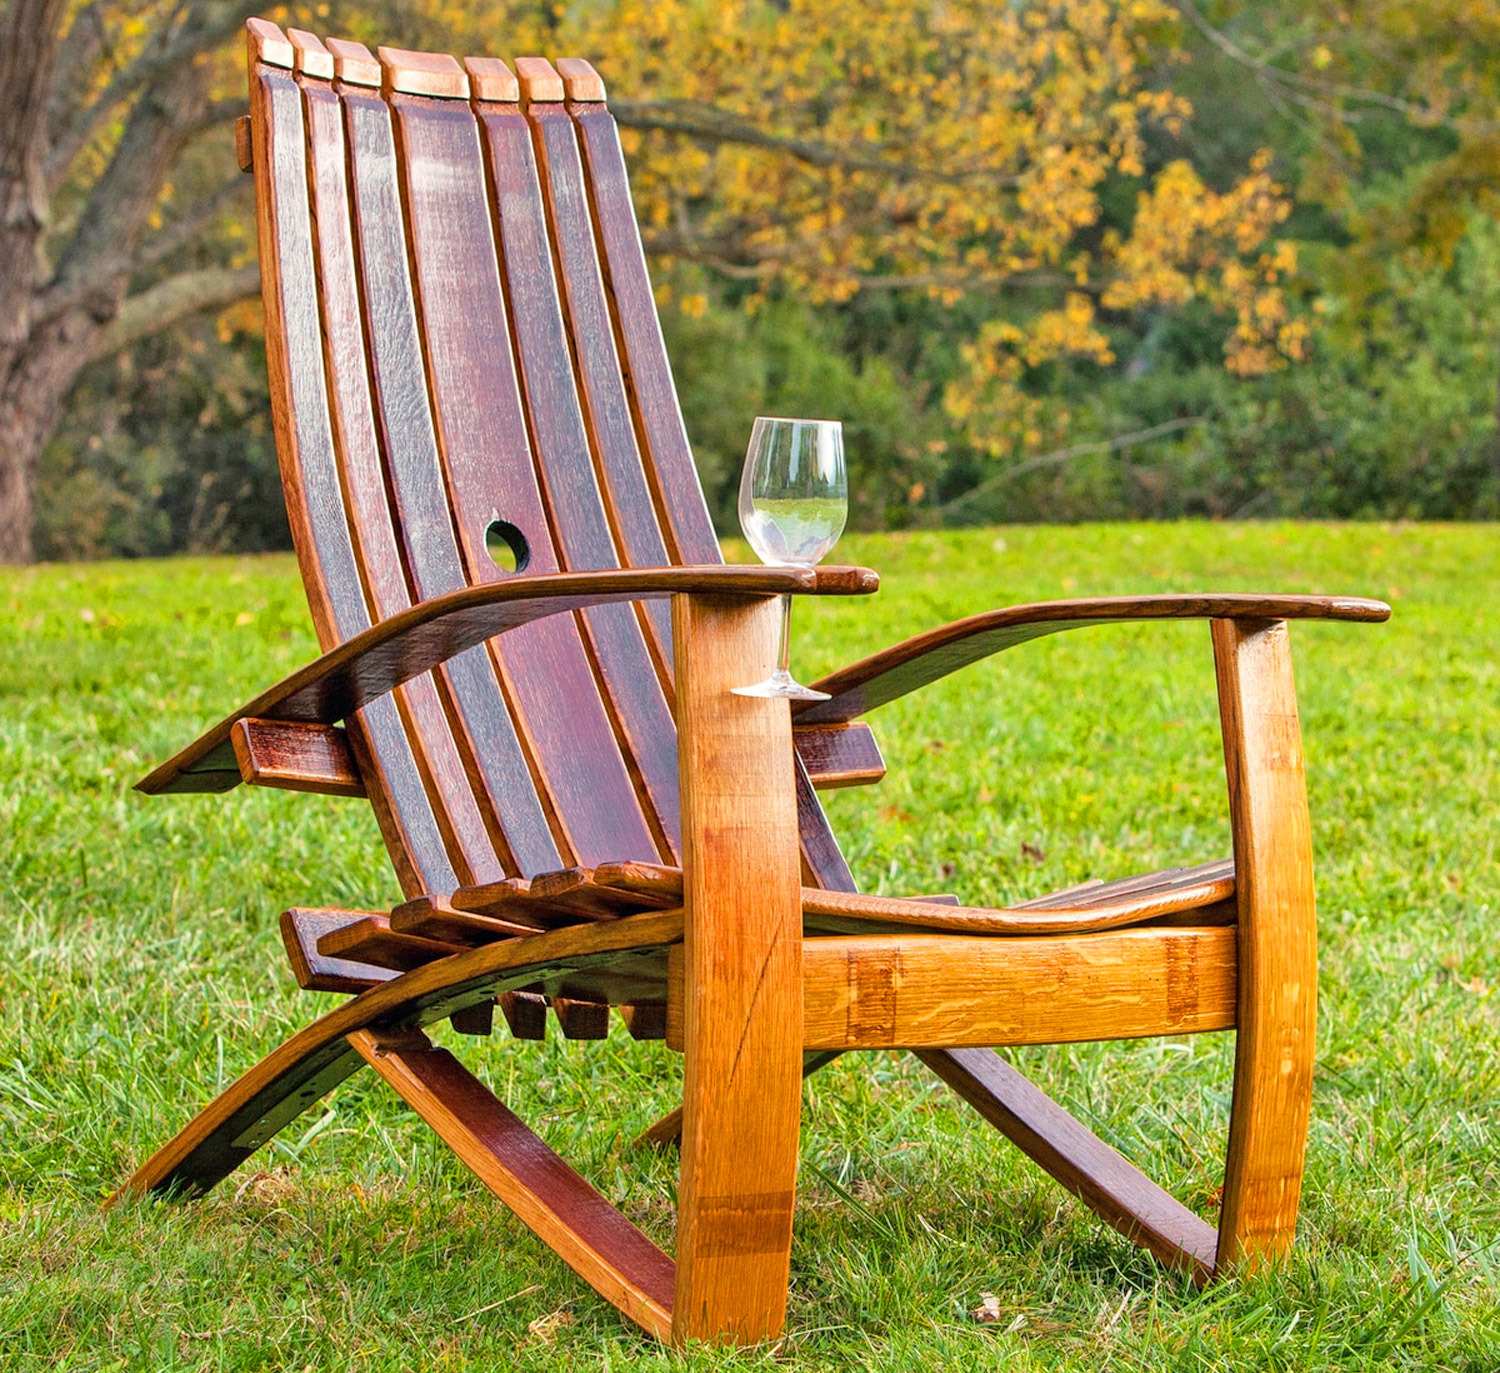 This Adirondack Chair Is Made From an Old Wine Barrel and Has a Slot For a Wine Glass